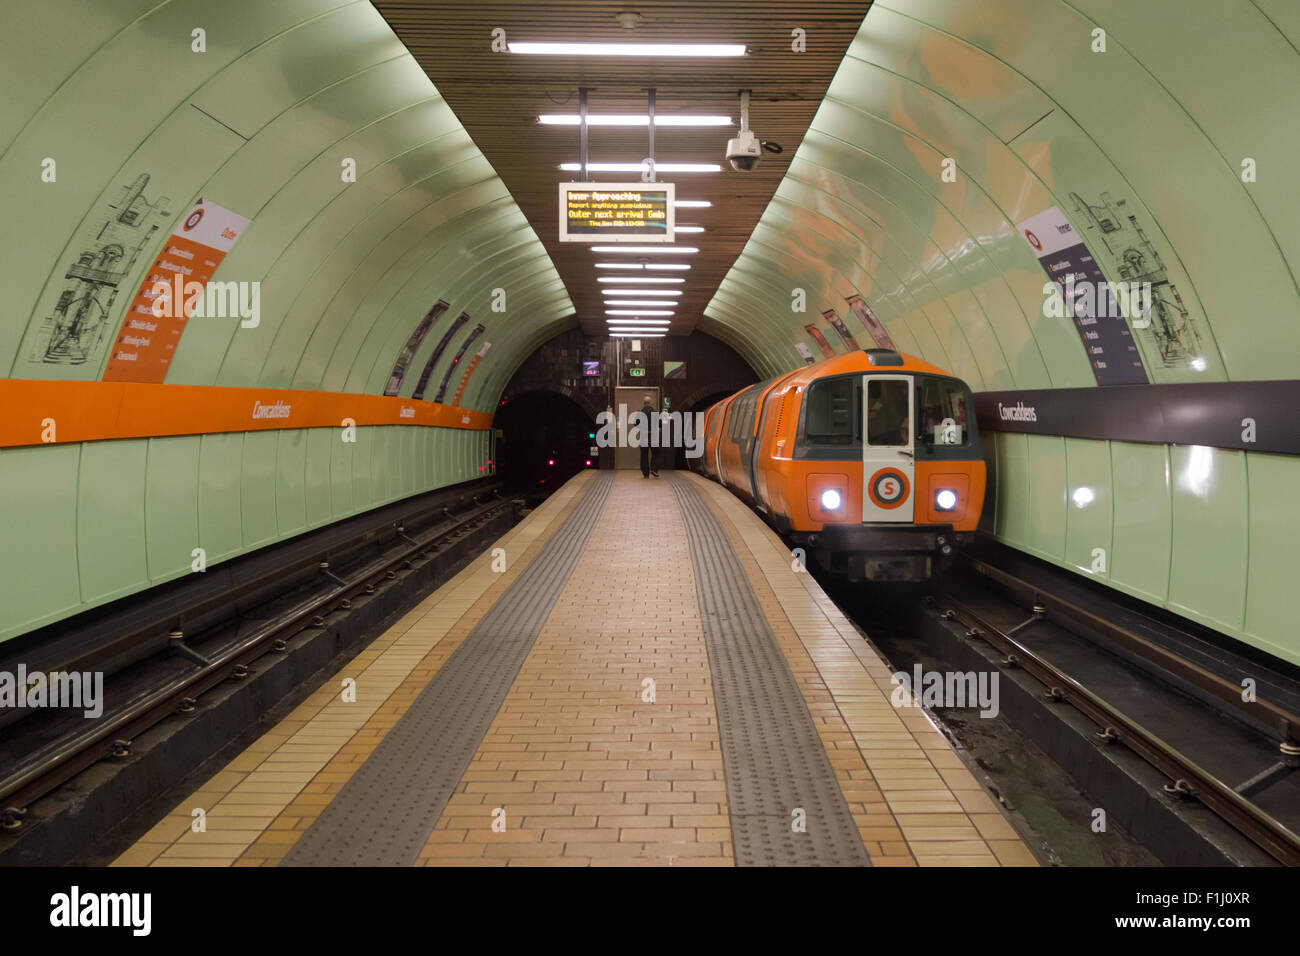 Glasgow Subway Cowcaddens Station, Glasgow, Scotland, UK - Stock Image